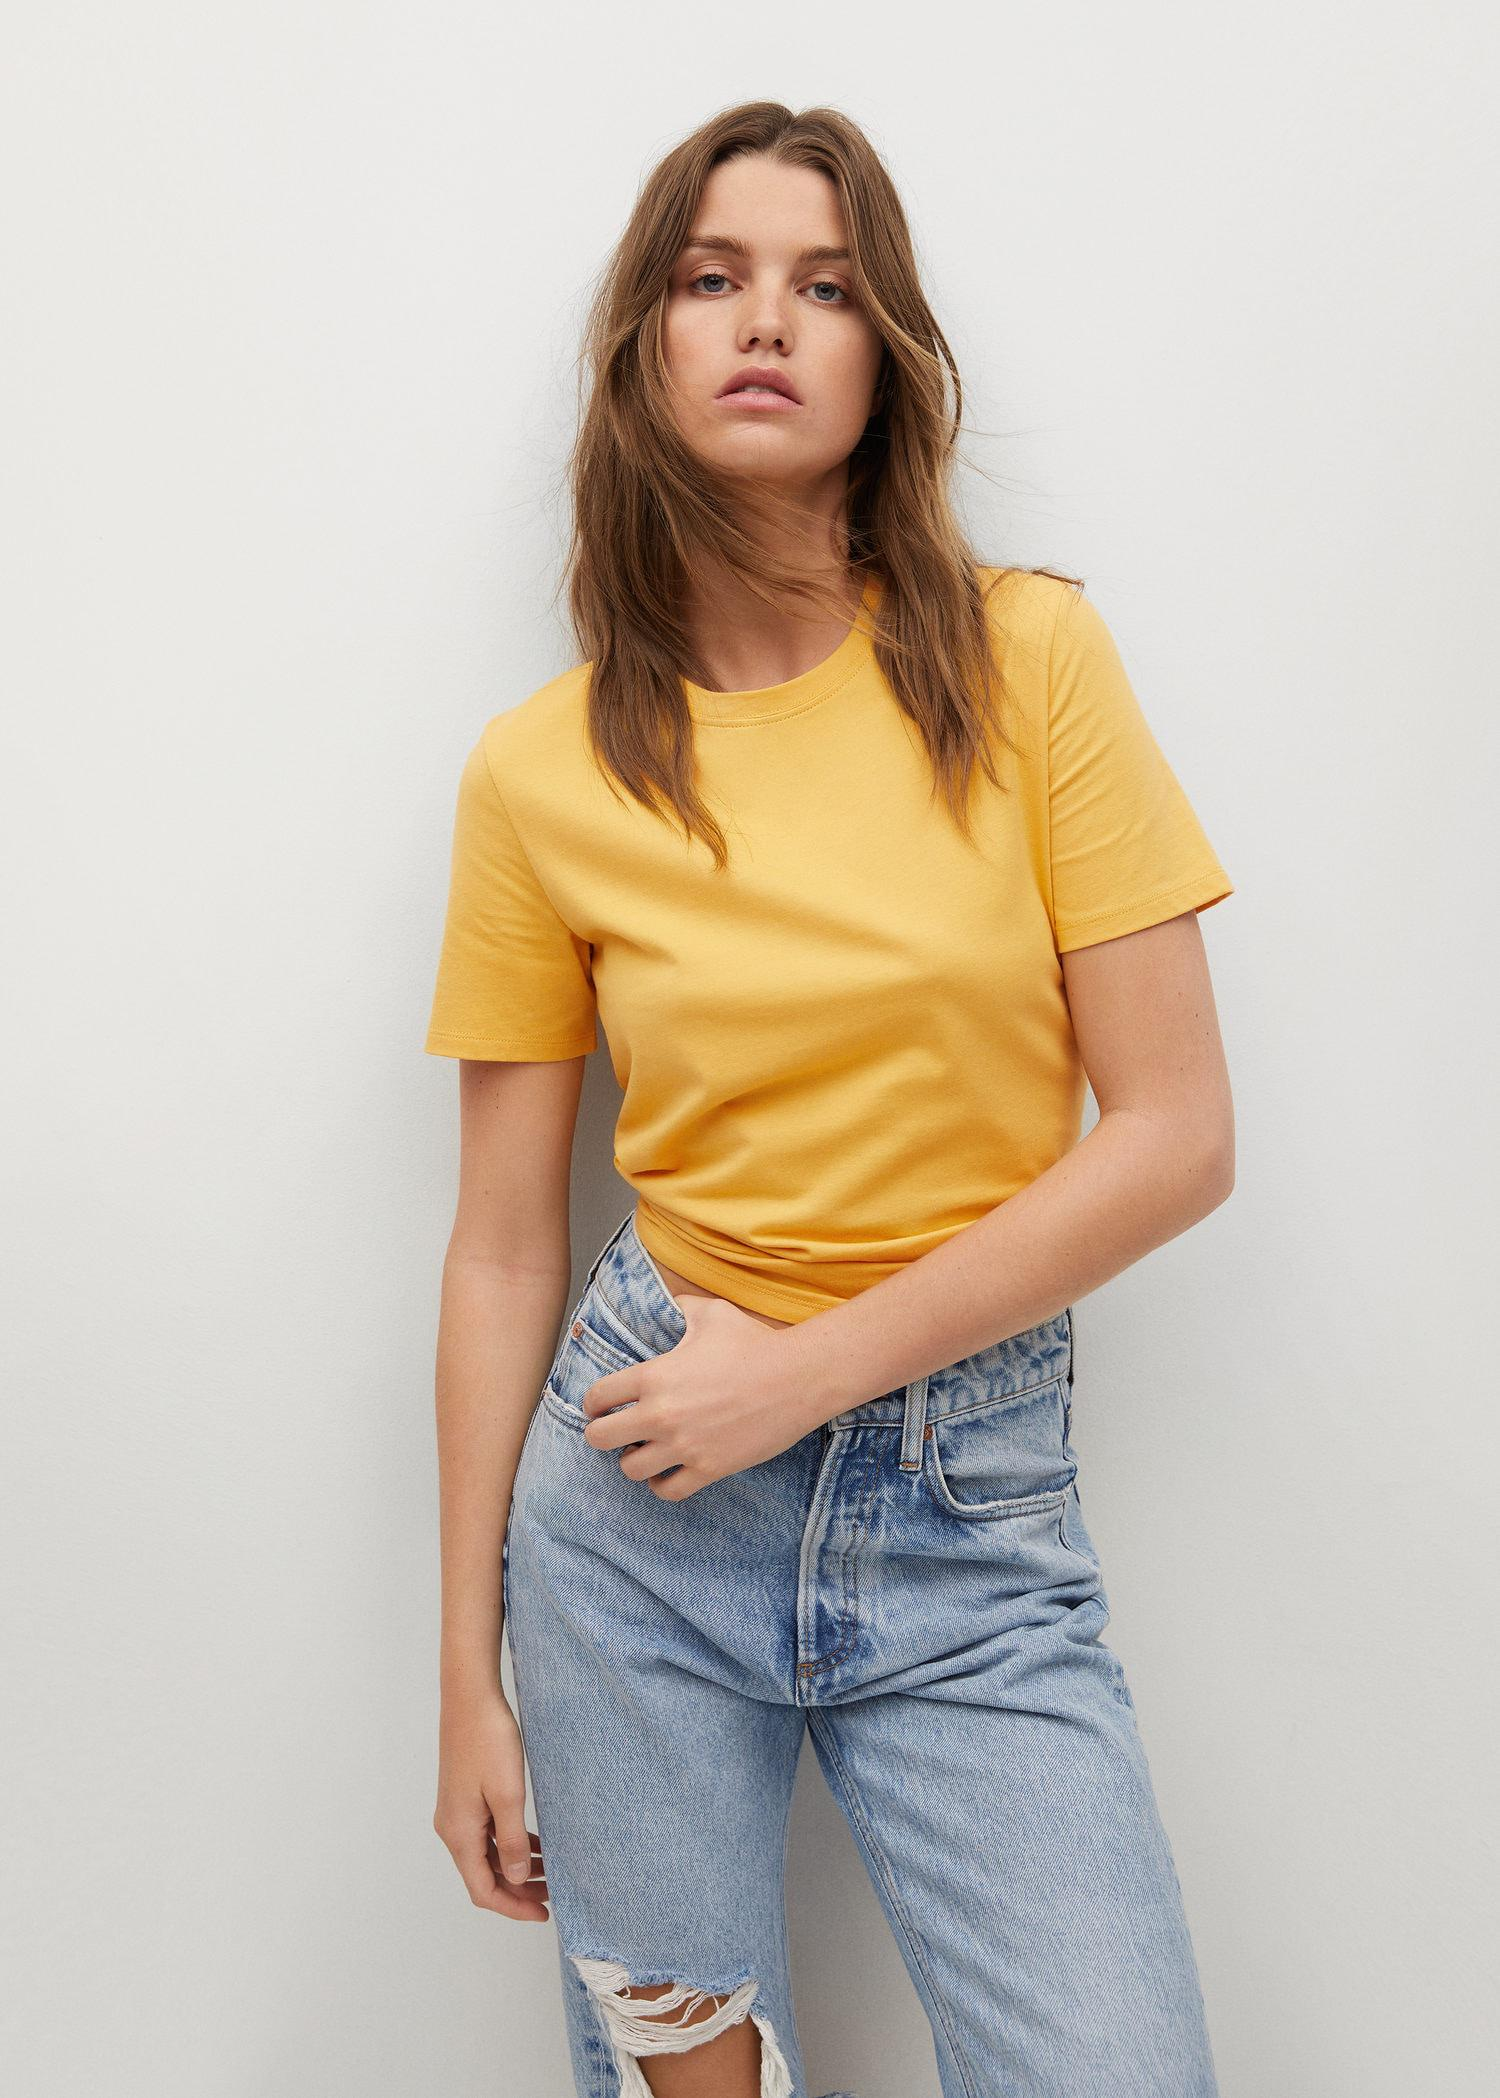 100% recycled cotton t-shirt